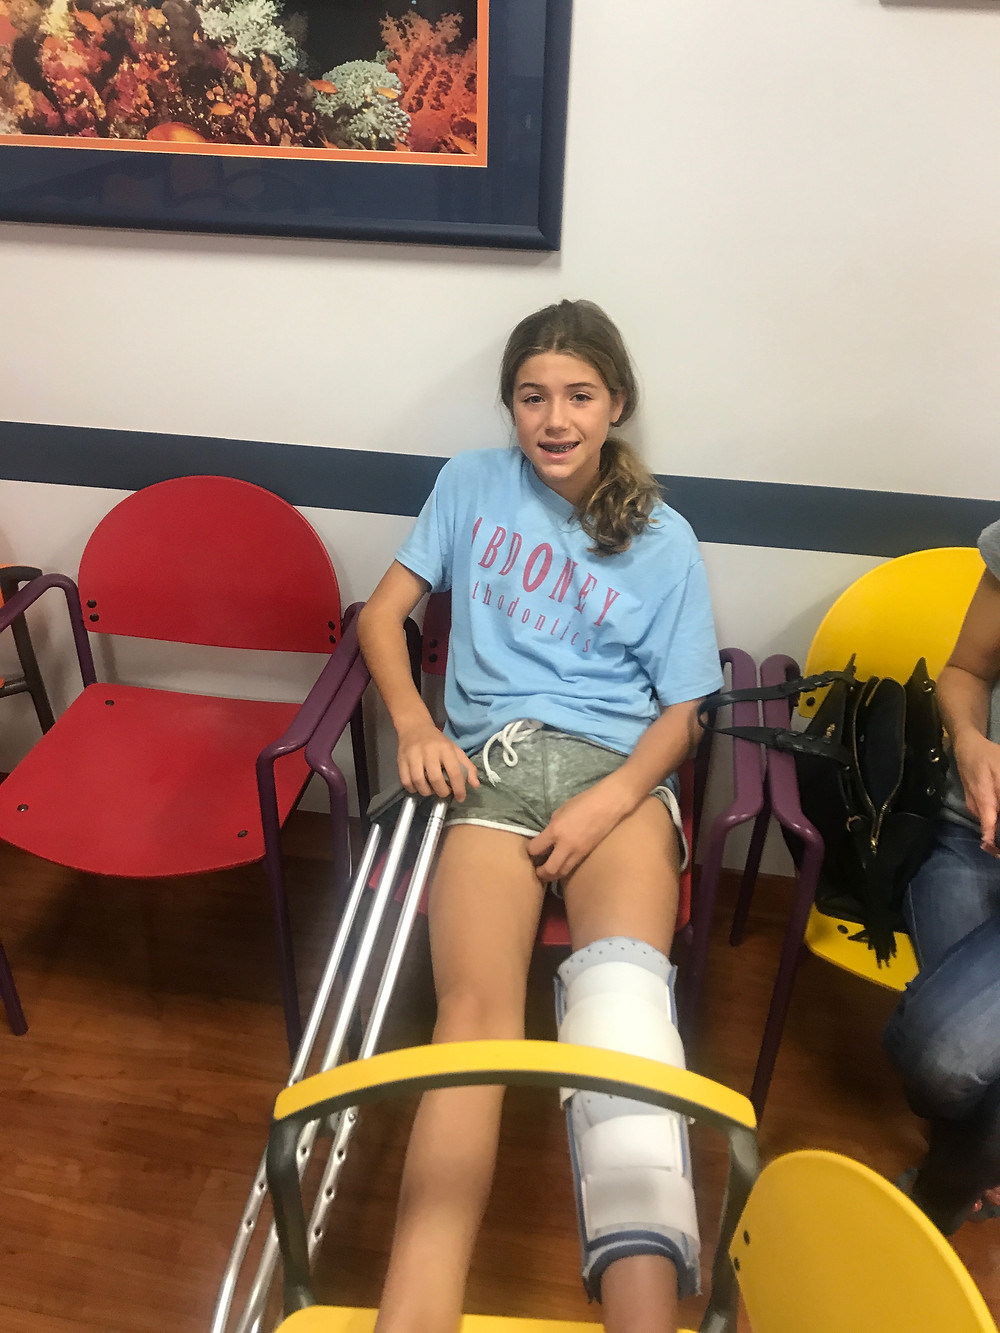 Claire in a leg cast and brace